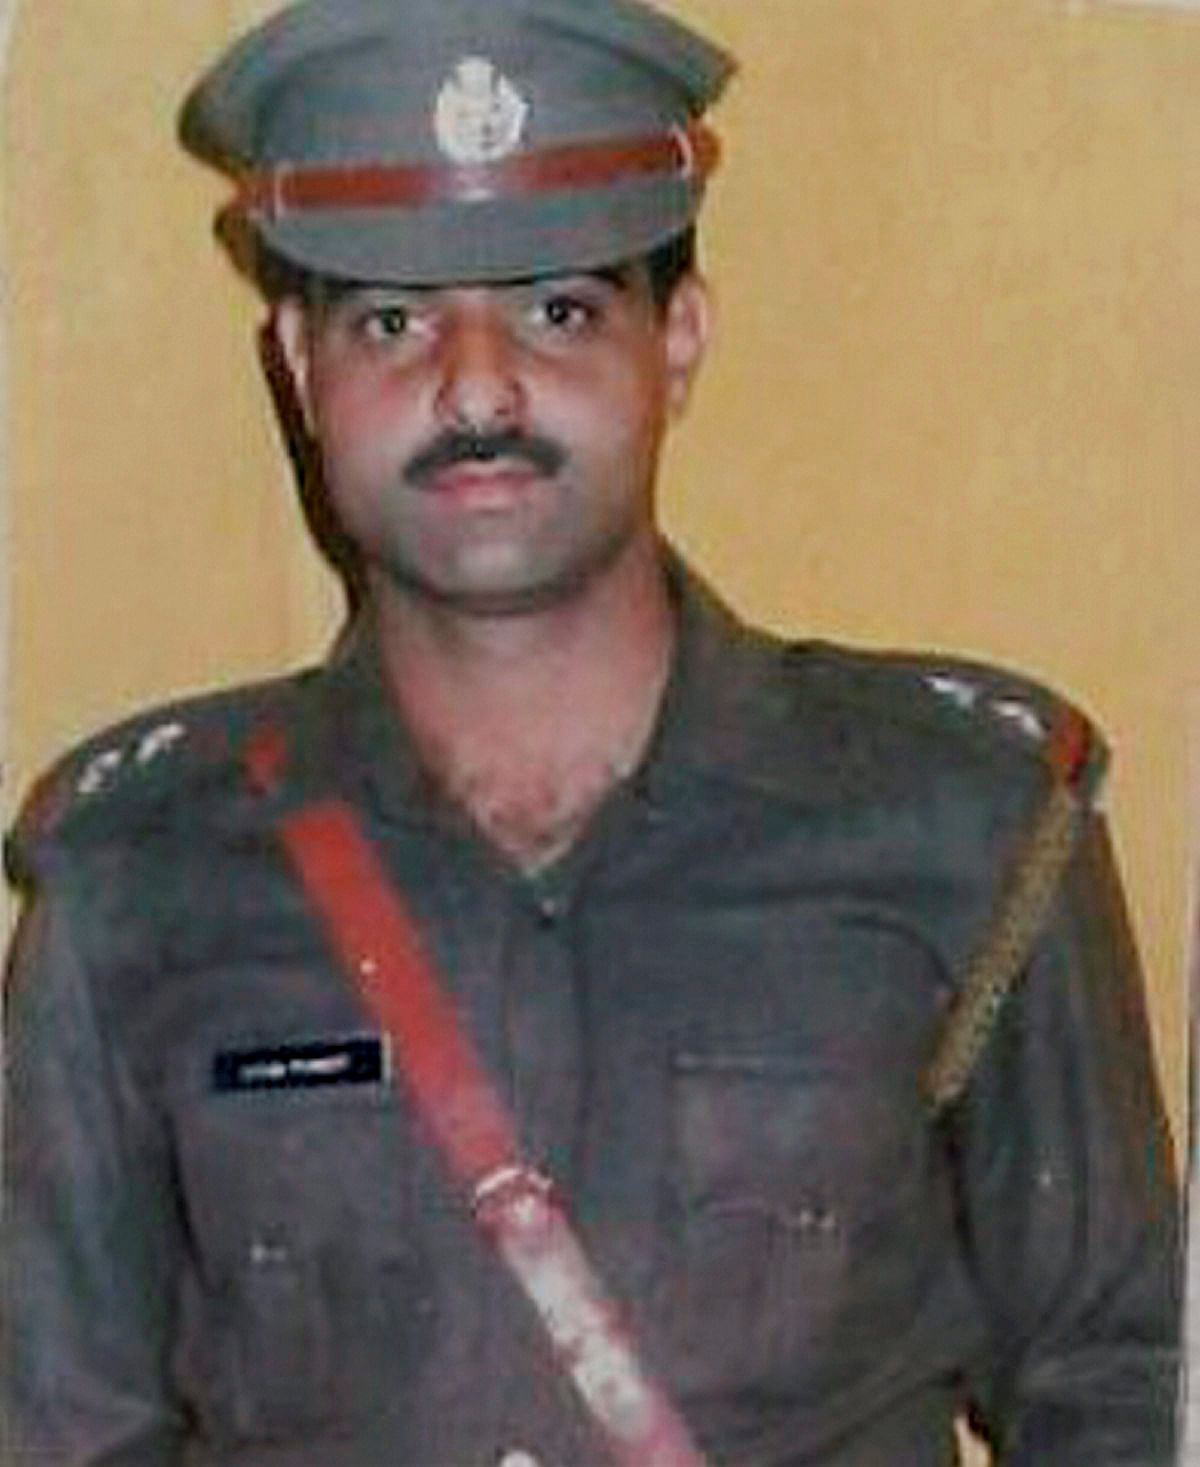 Deputy Superintendent of Police Mohammad Ayub Pandith